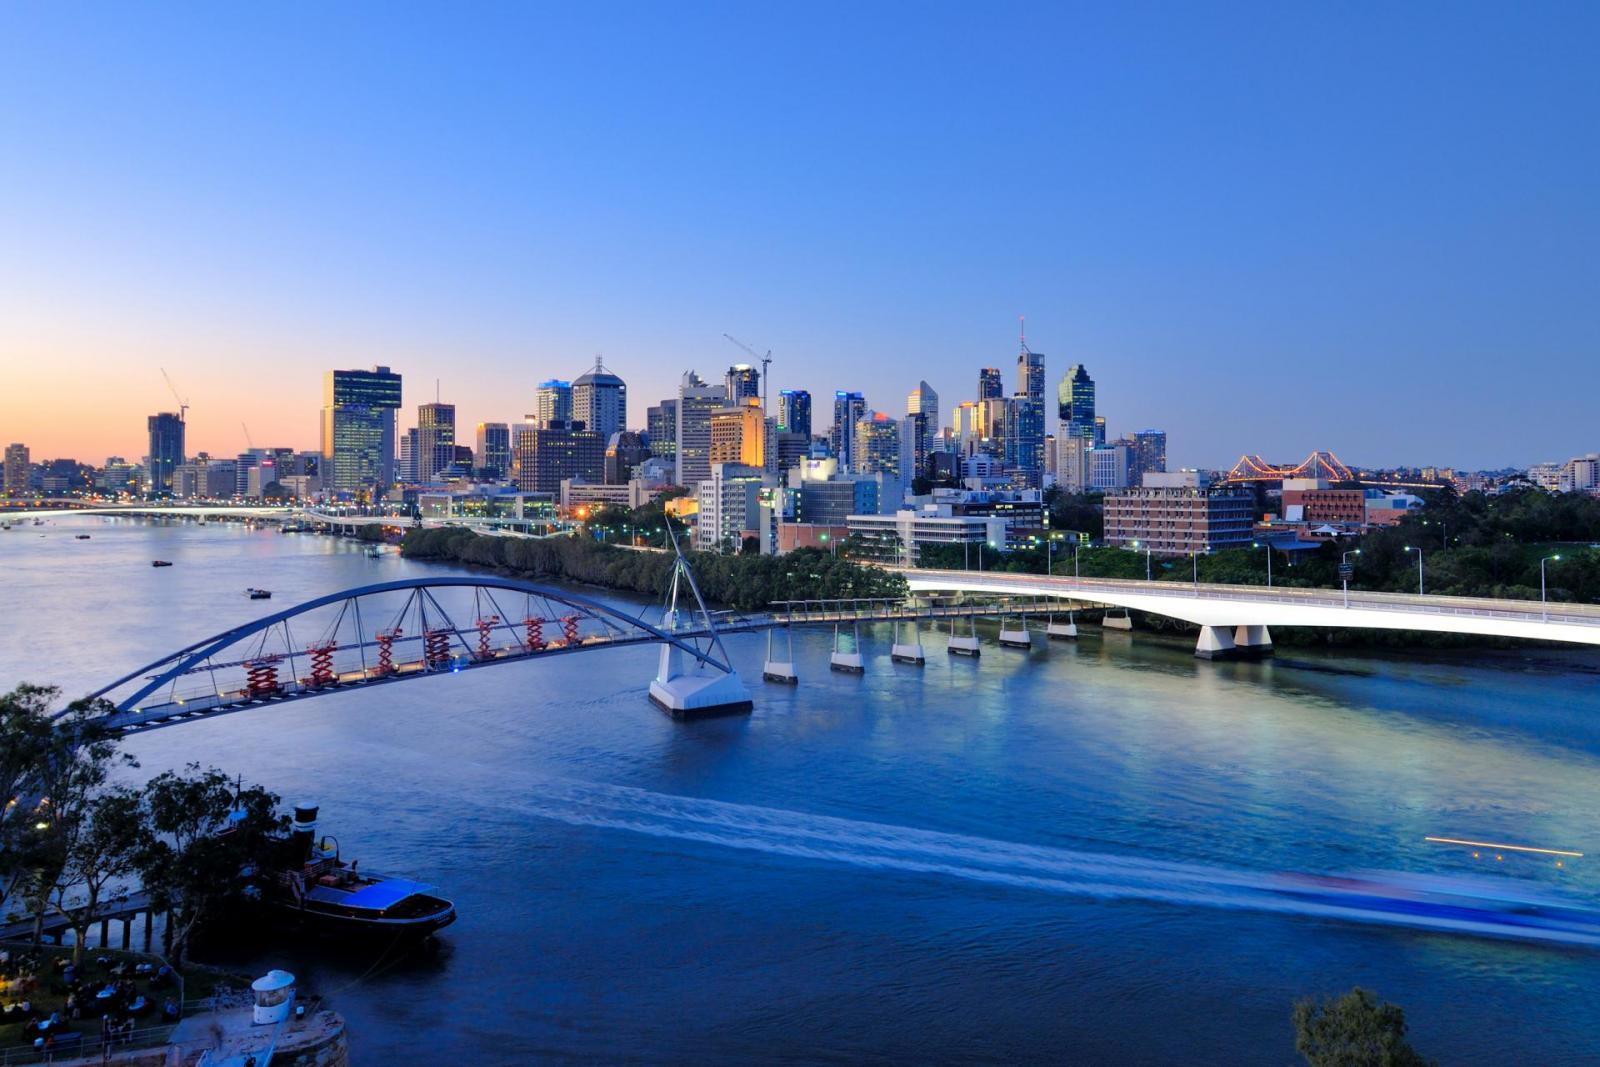 Australia Landscape : Brisbane city skyline at dusk